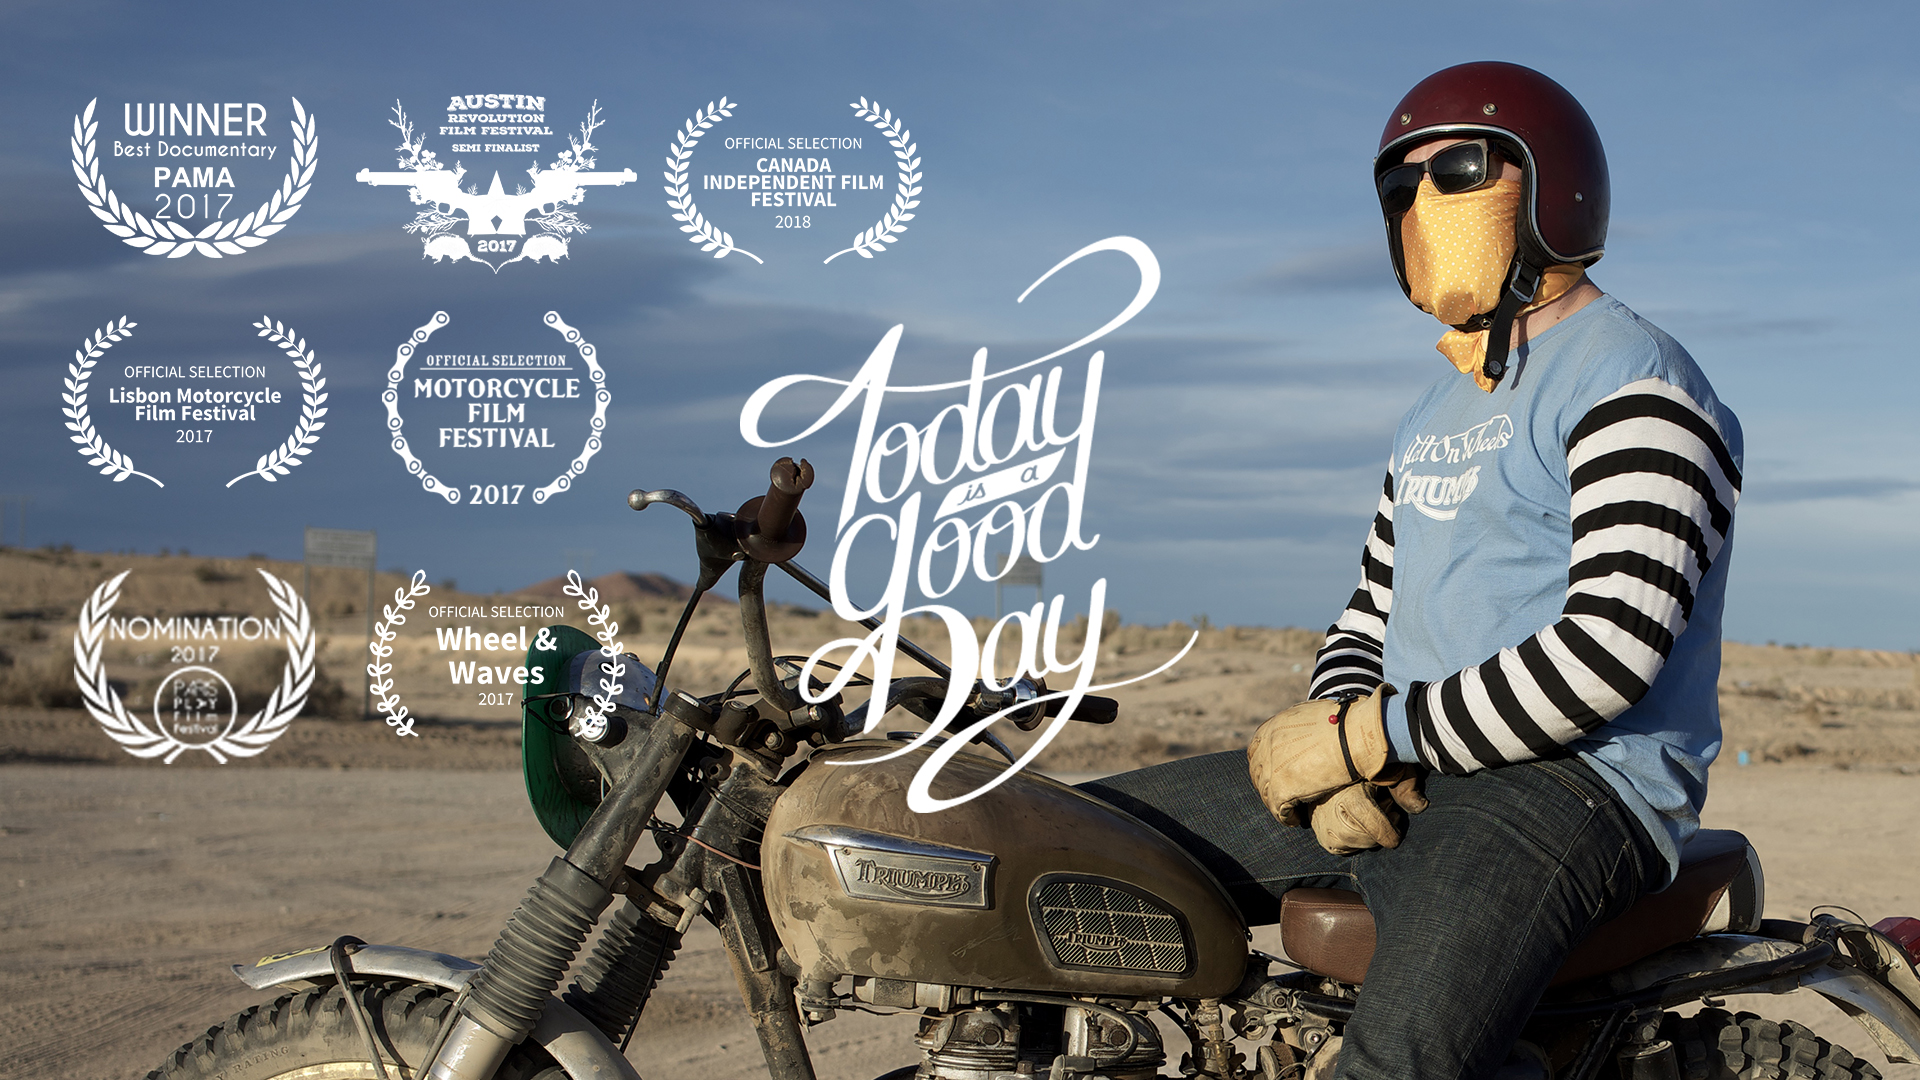 TODAY IS A GOOD DAY - DOCUMENTAIRE 52'